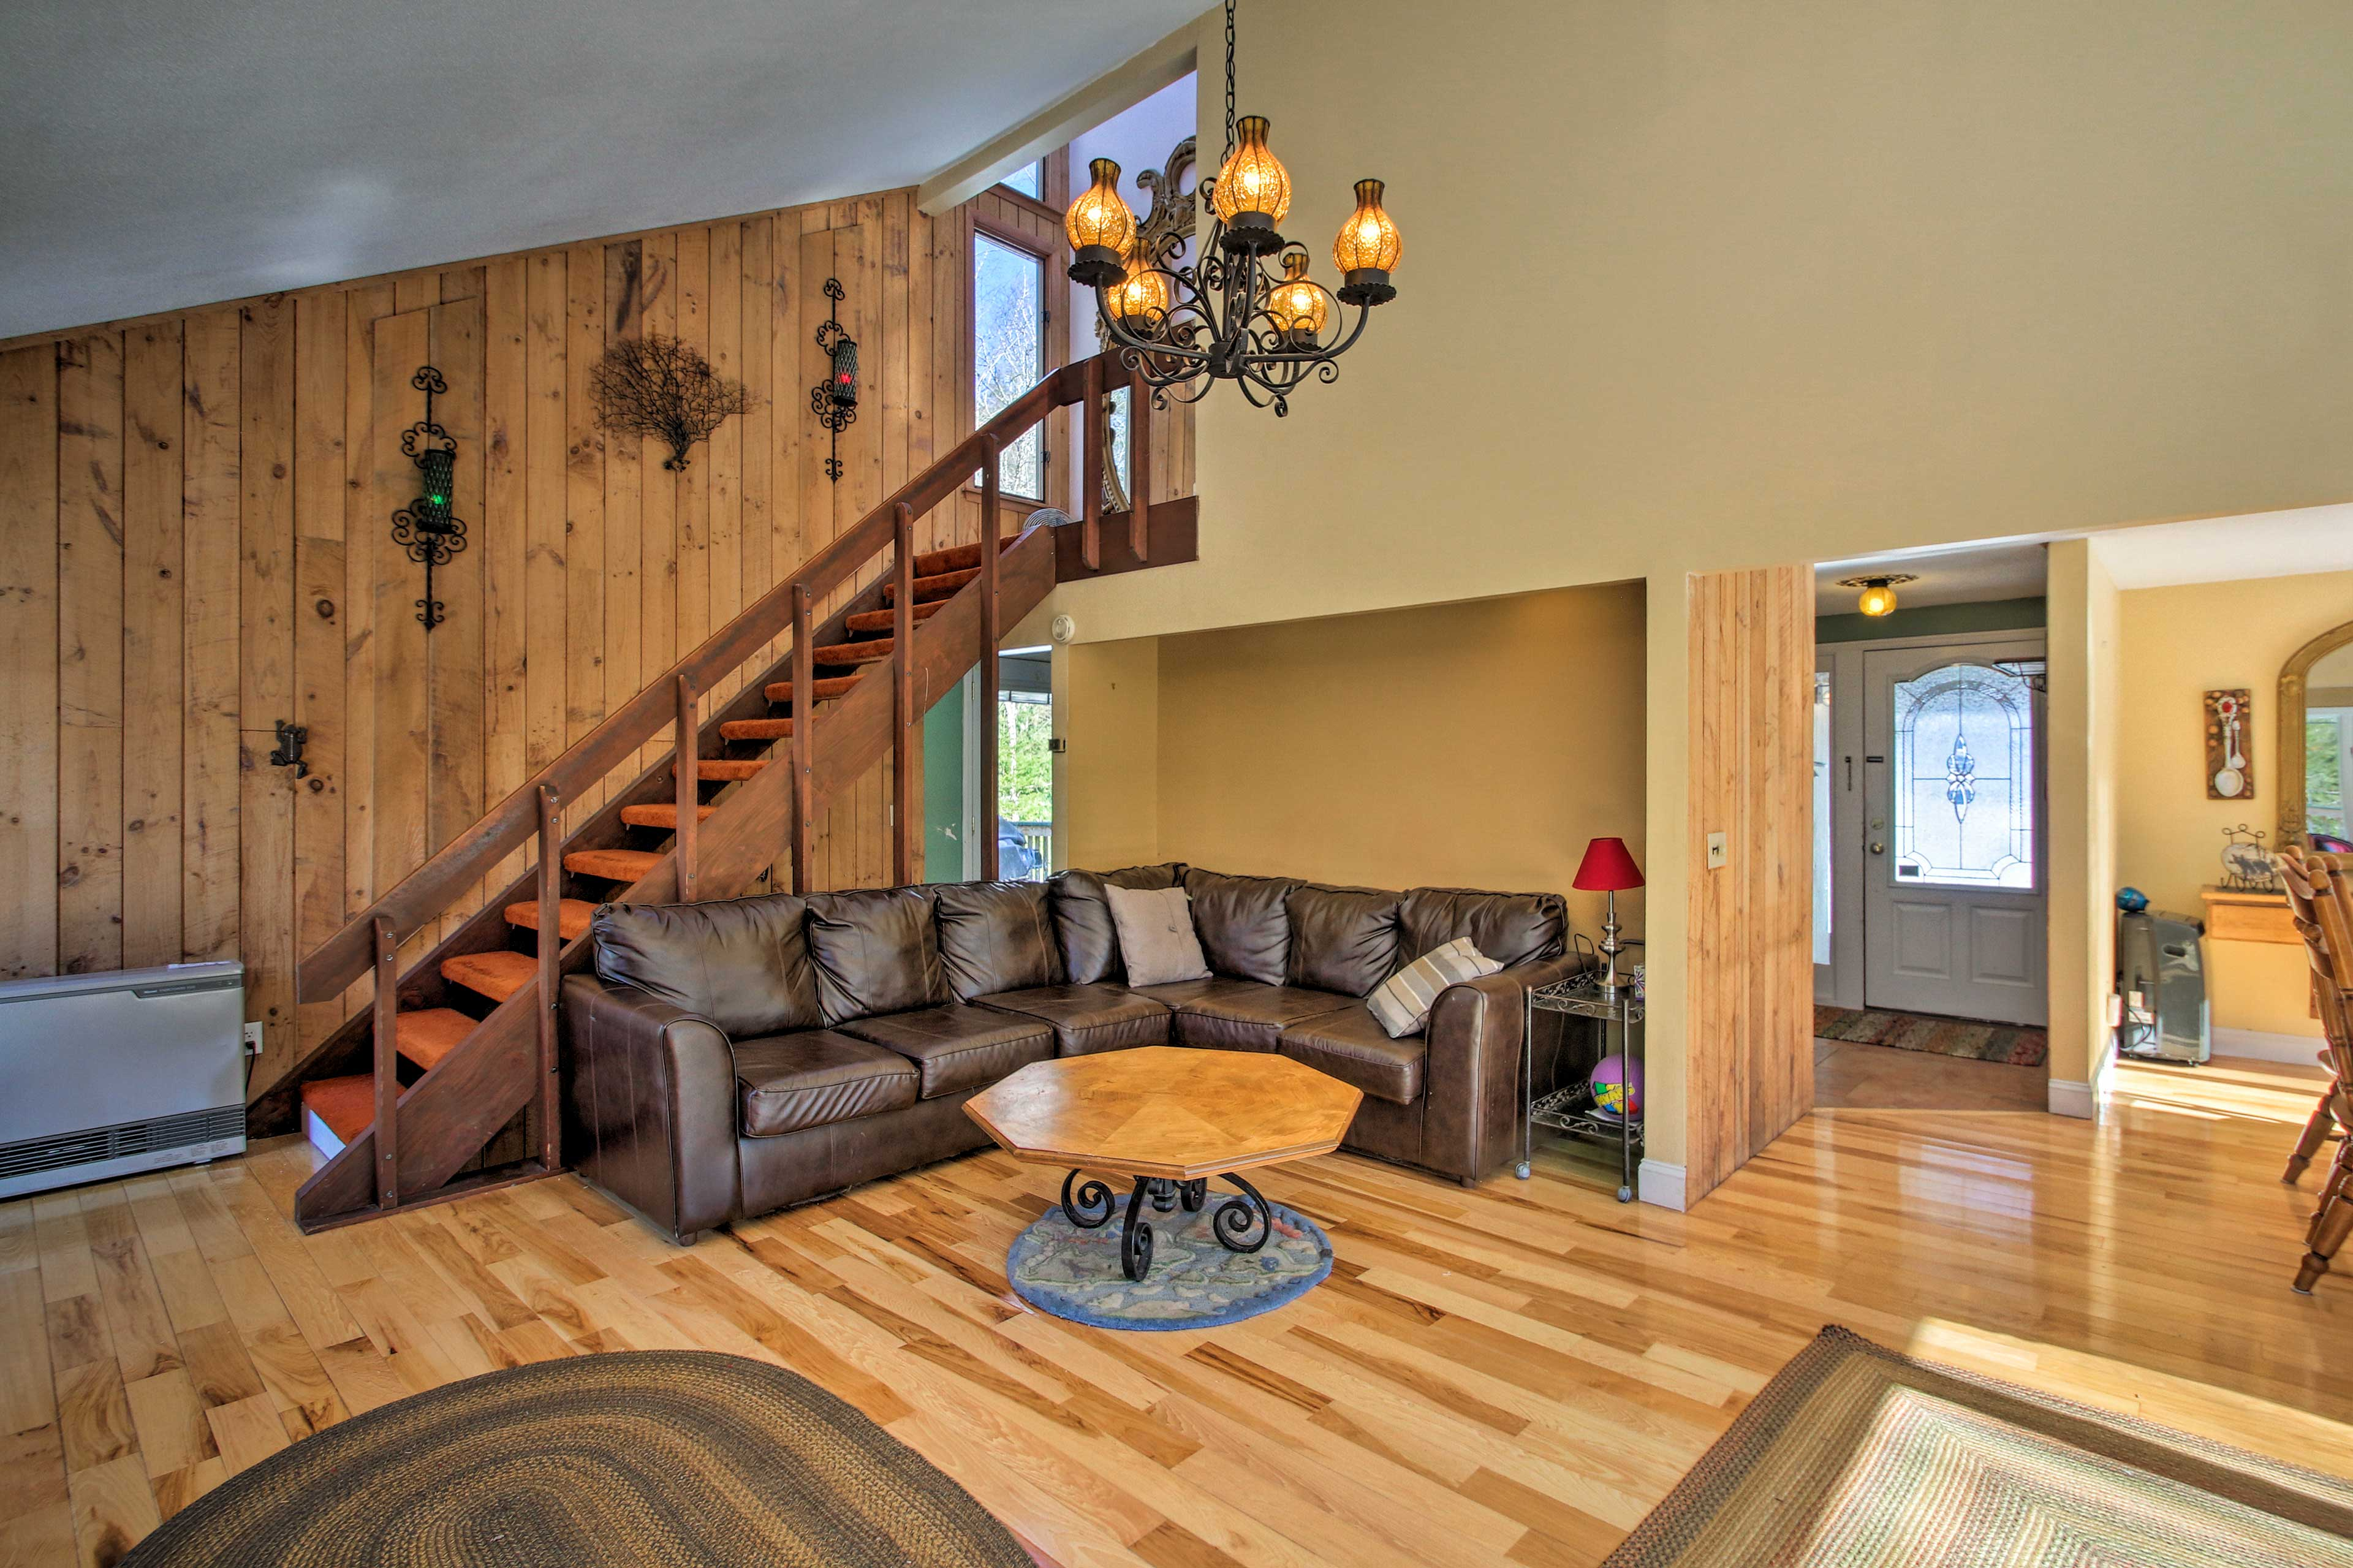 Kick back on the leather sectional couch in the living room.